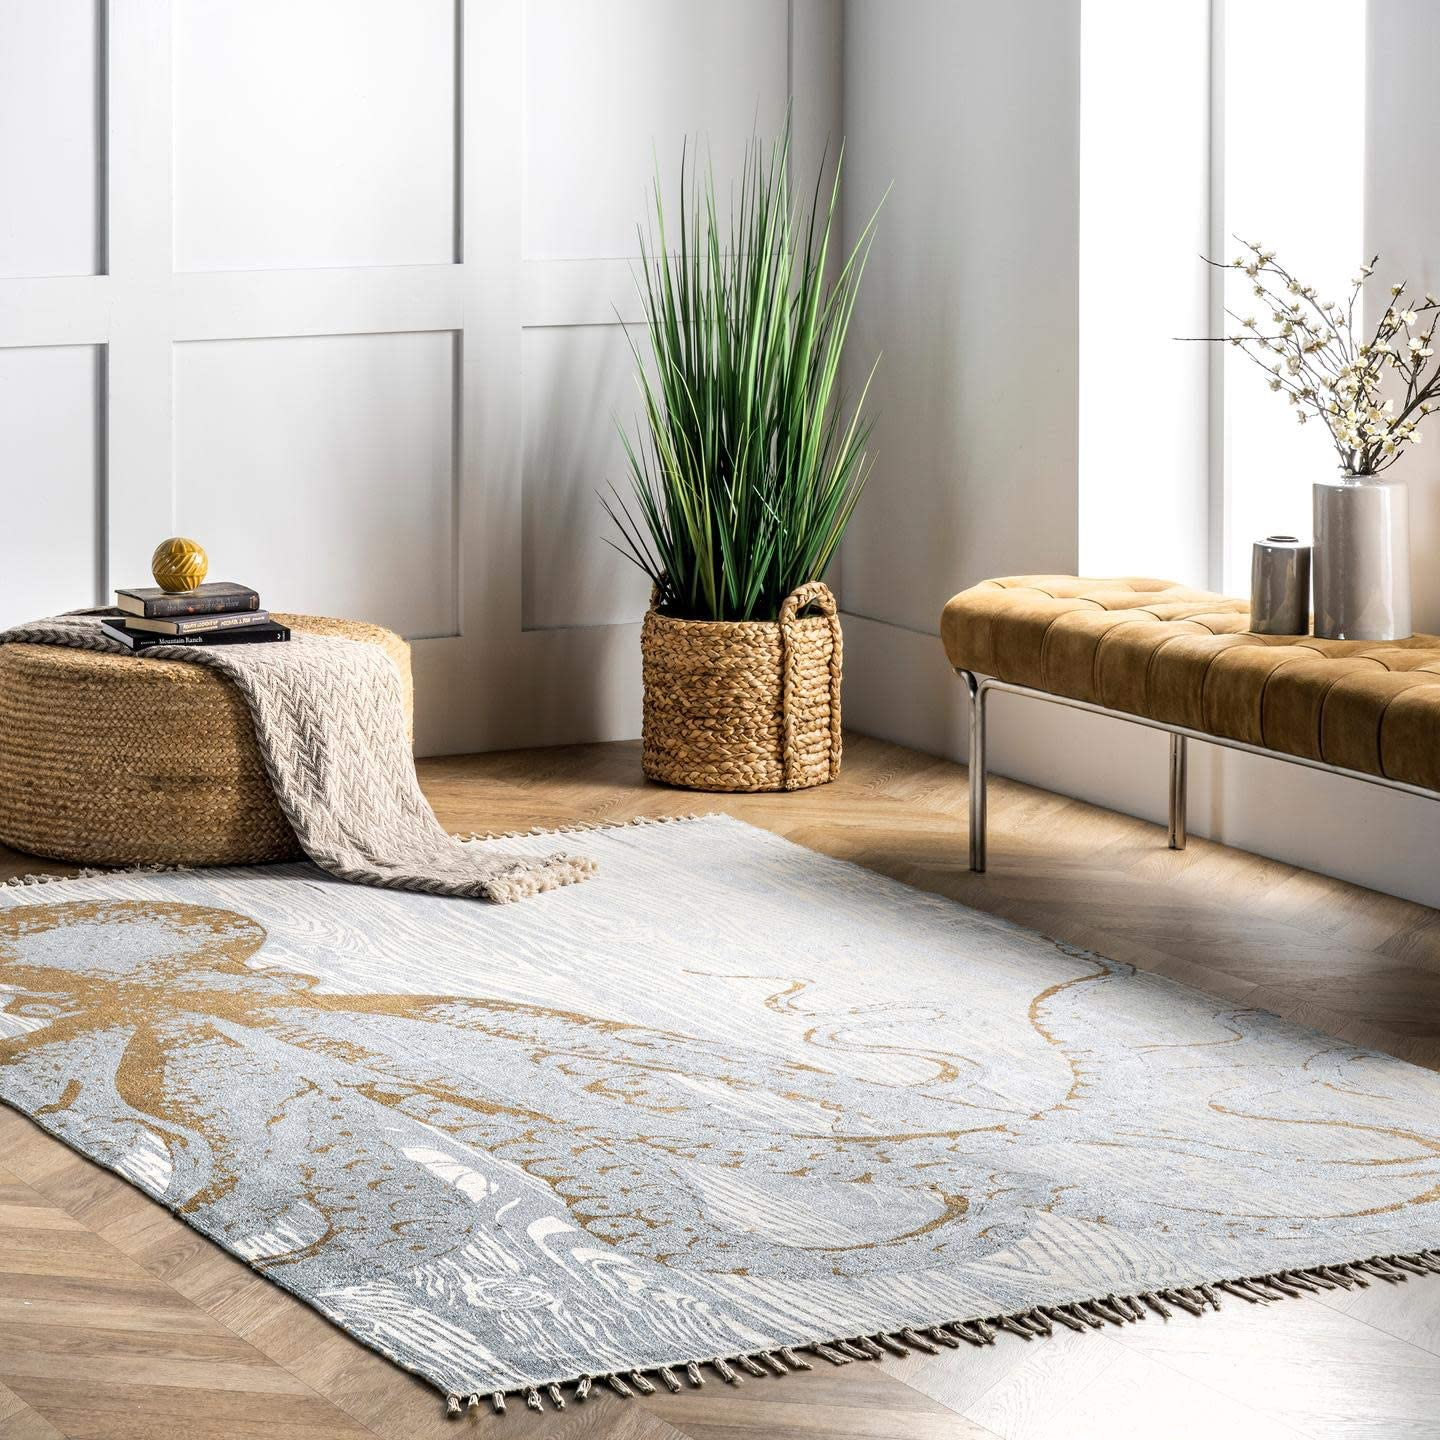 nuLOOM Thomas Paul Metallic Area Rug